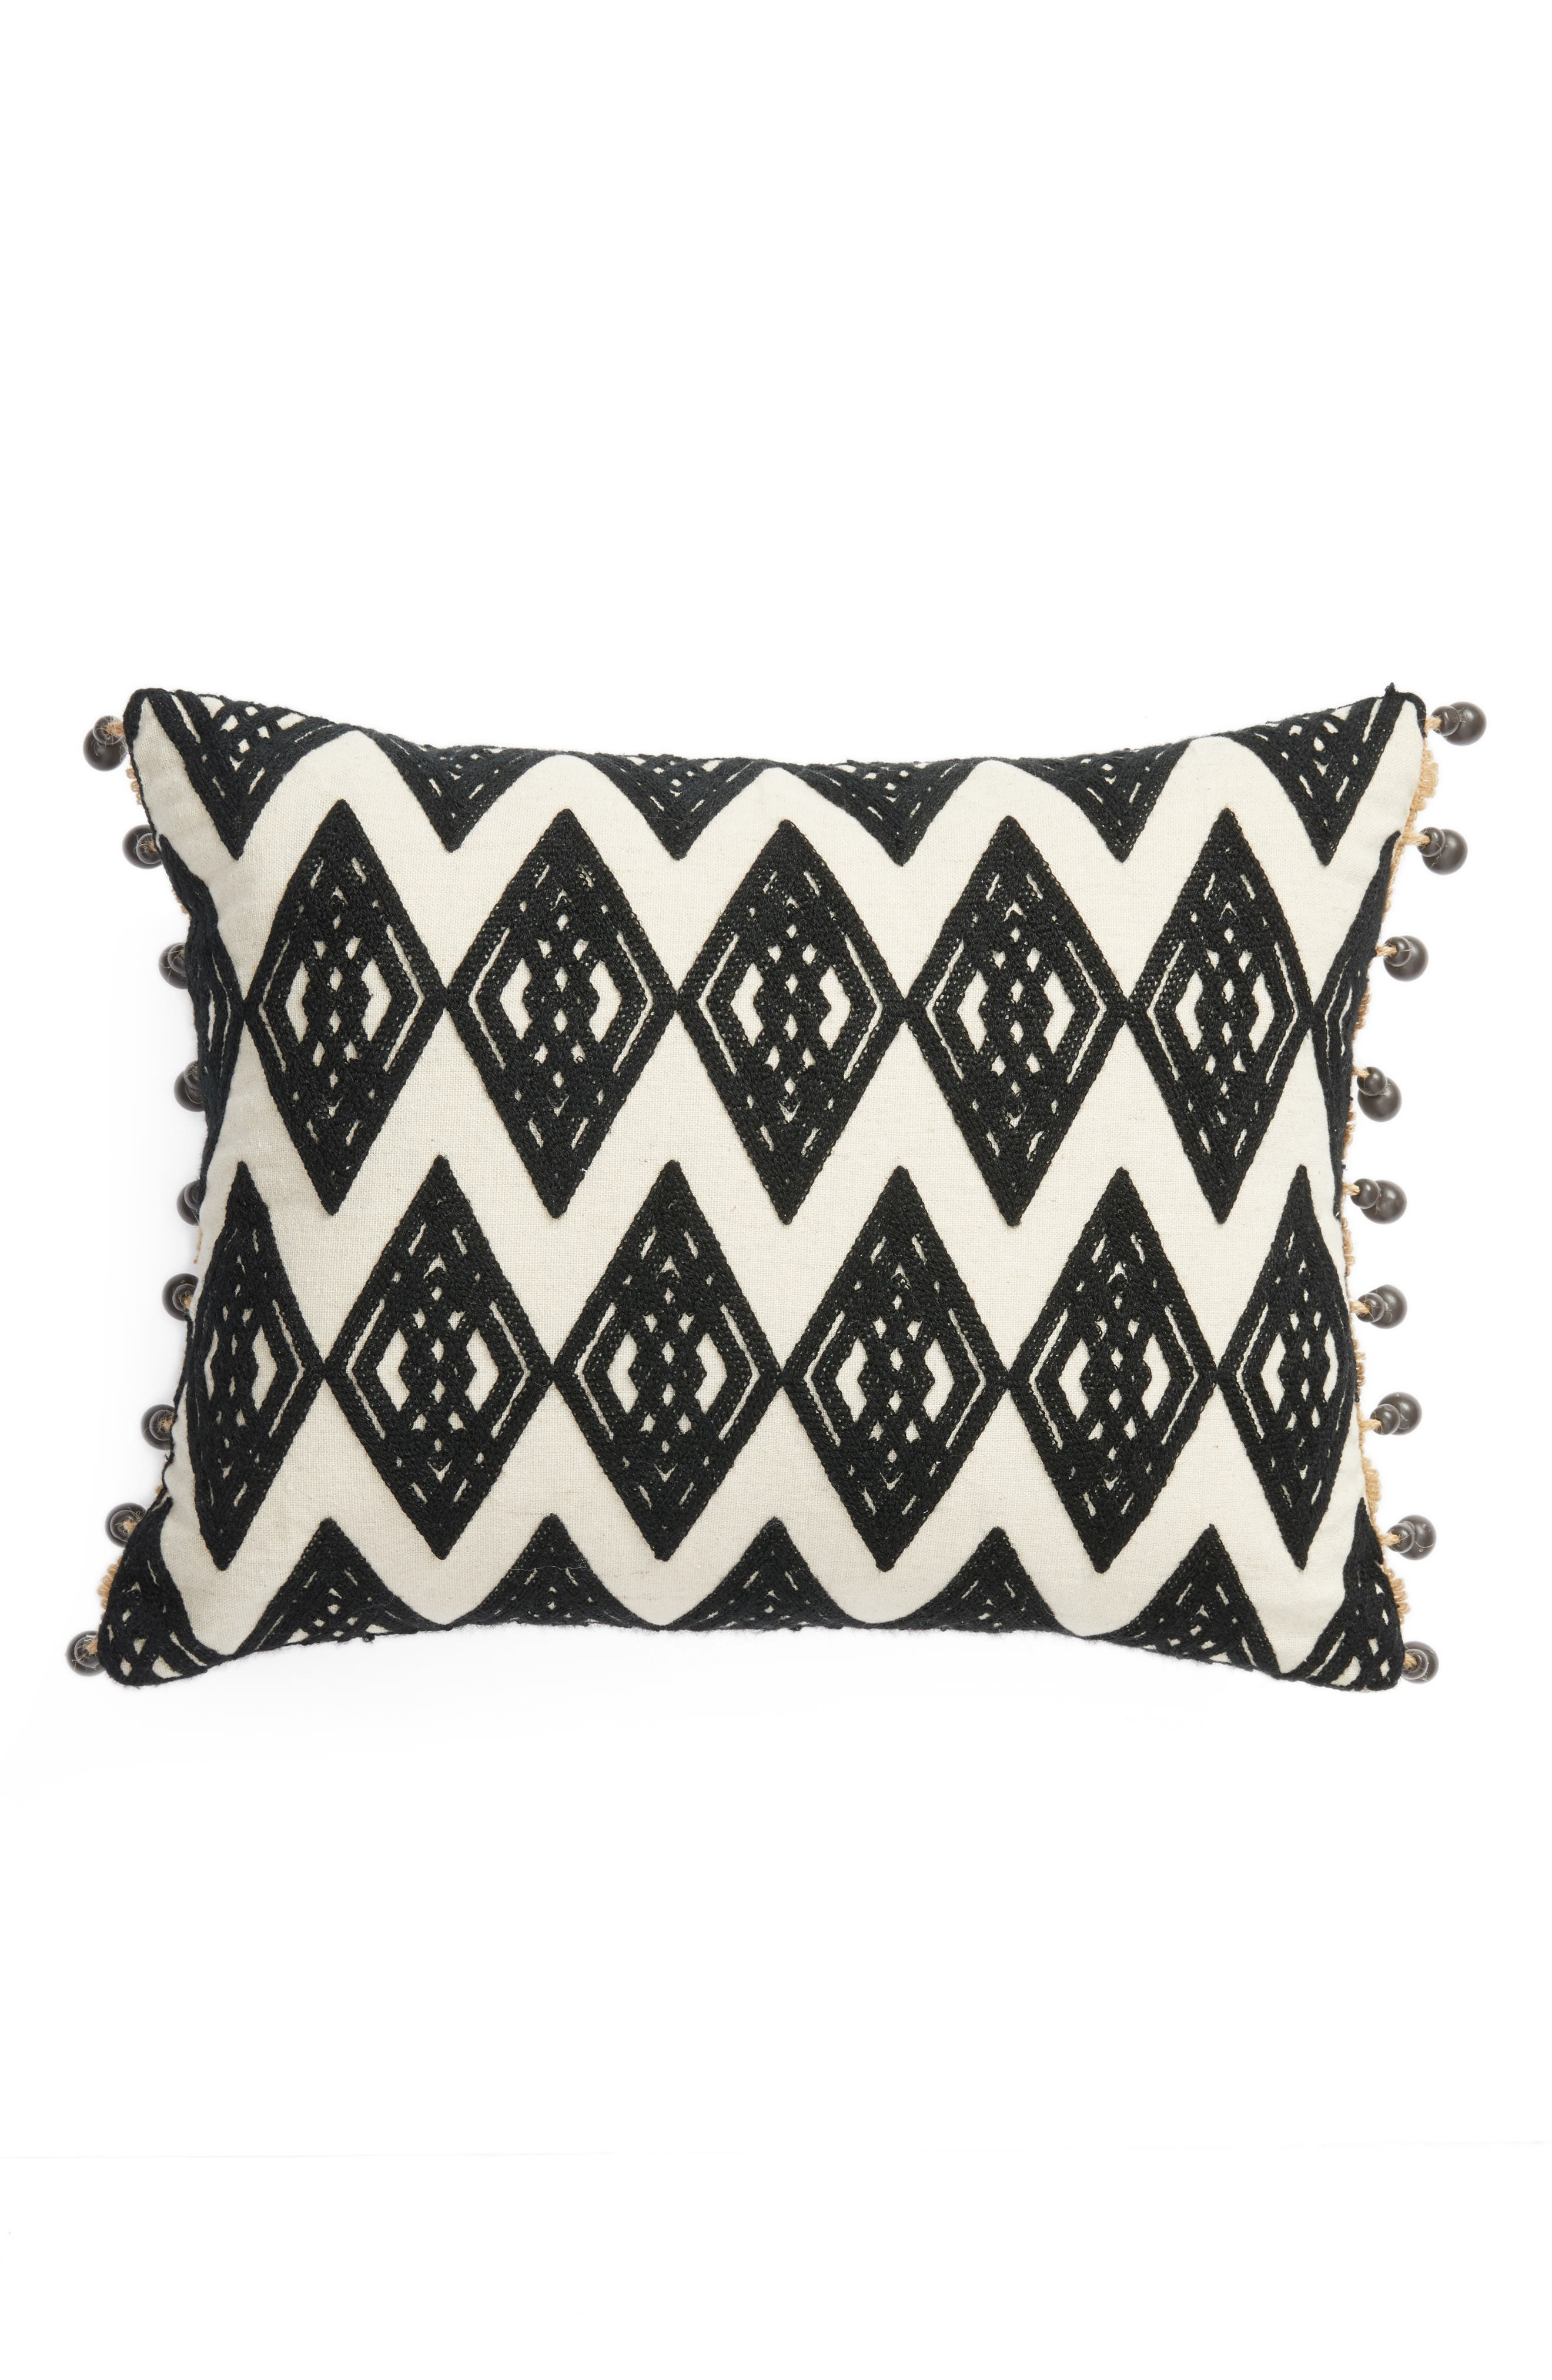 Moroccan Crewel Embroidered Pillow,                         Main,                         color, 010